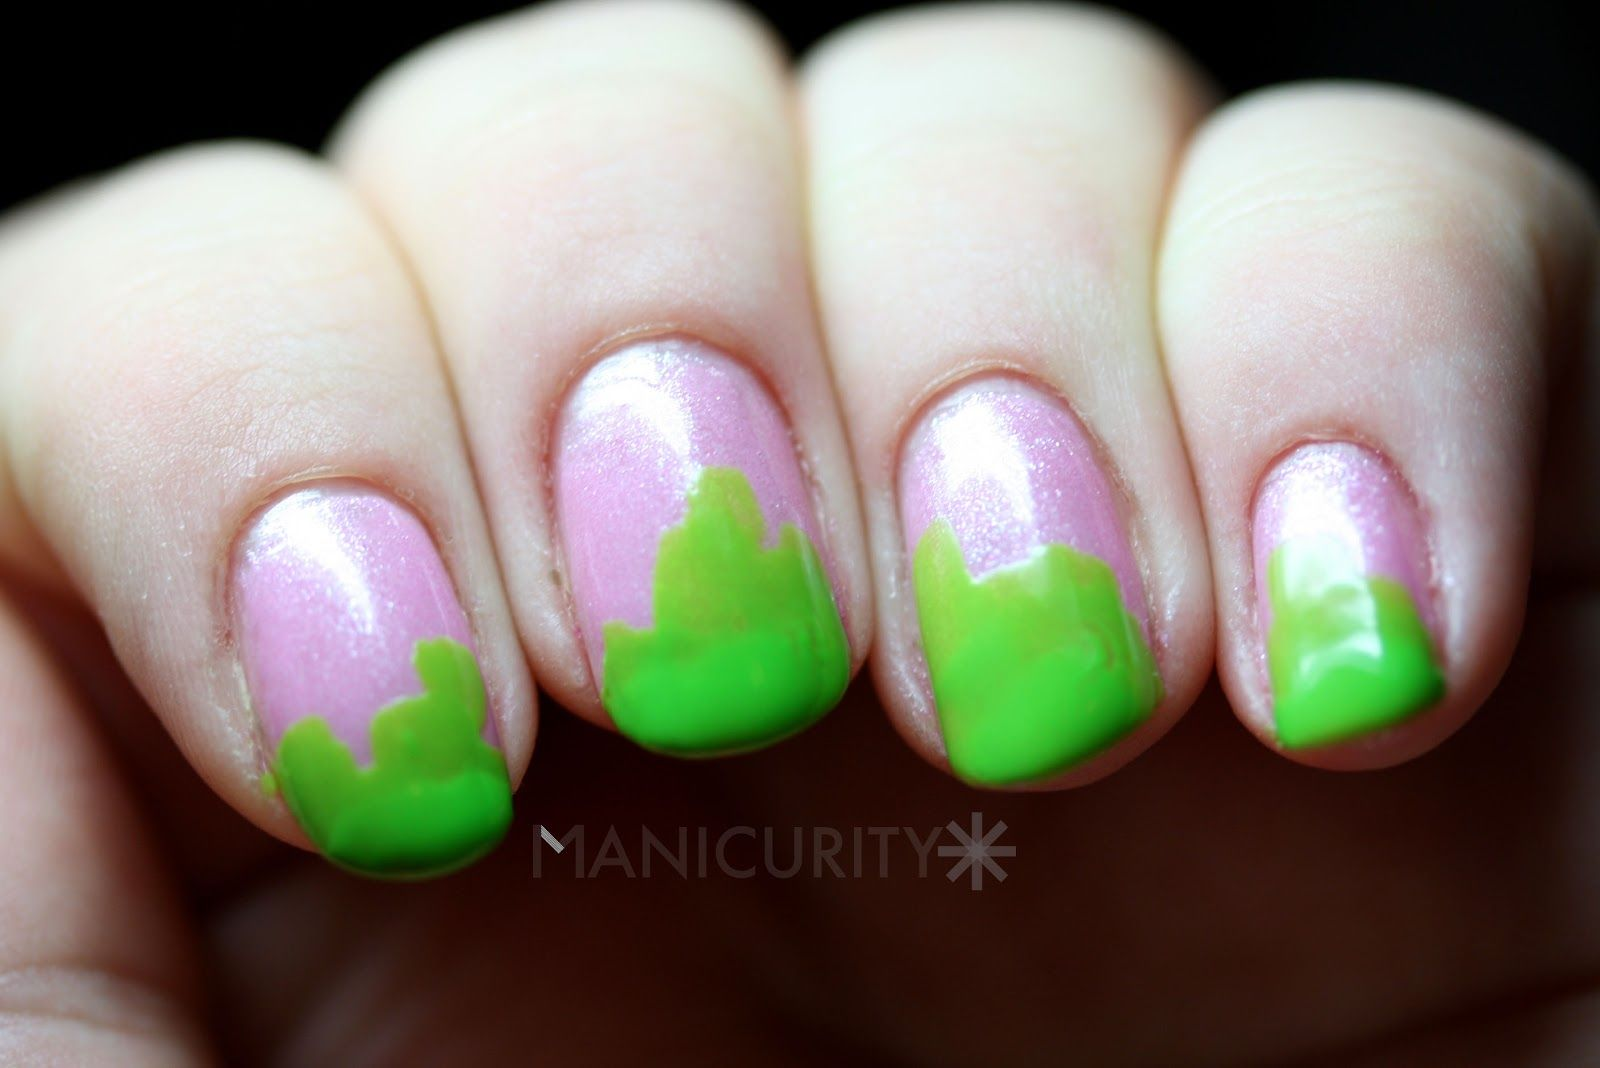 Manicurity: Slimey!